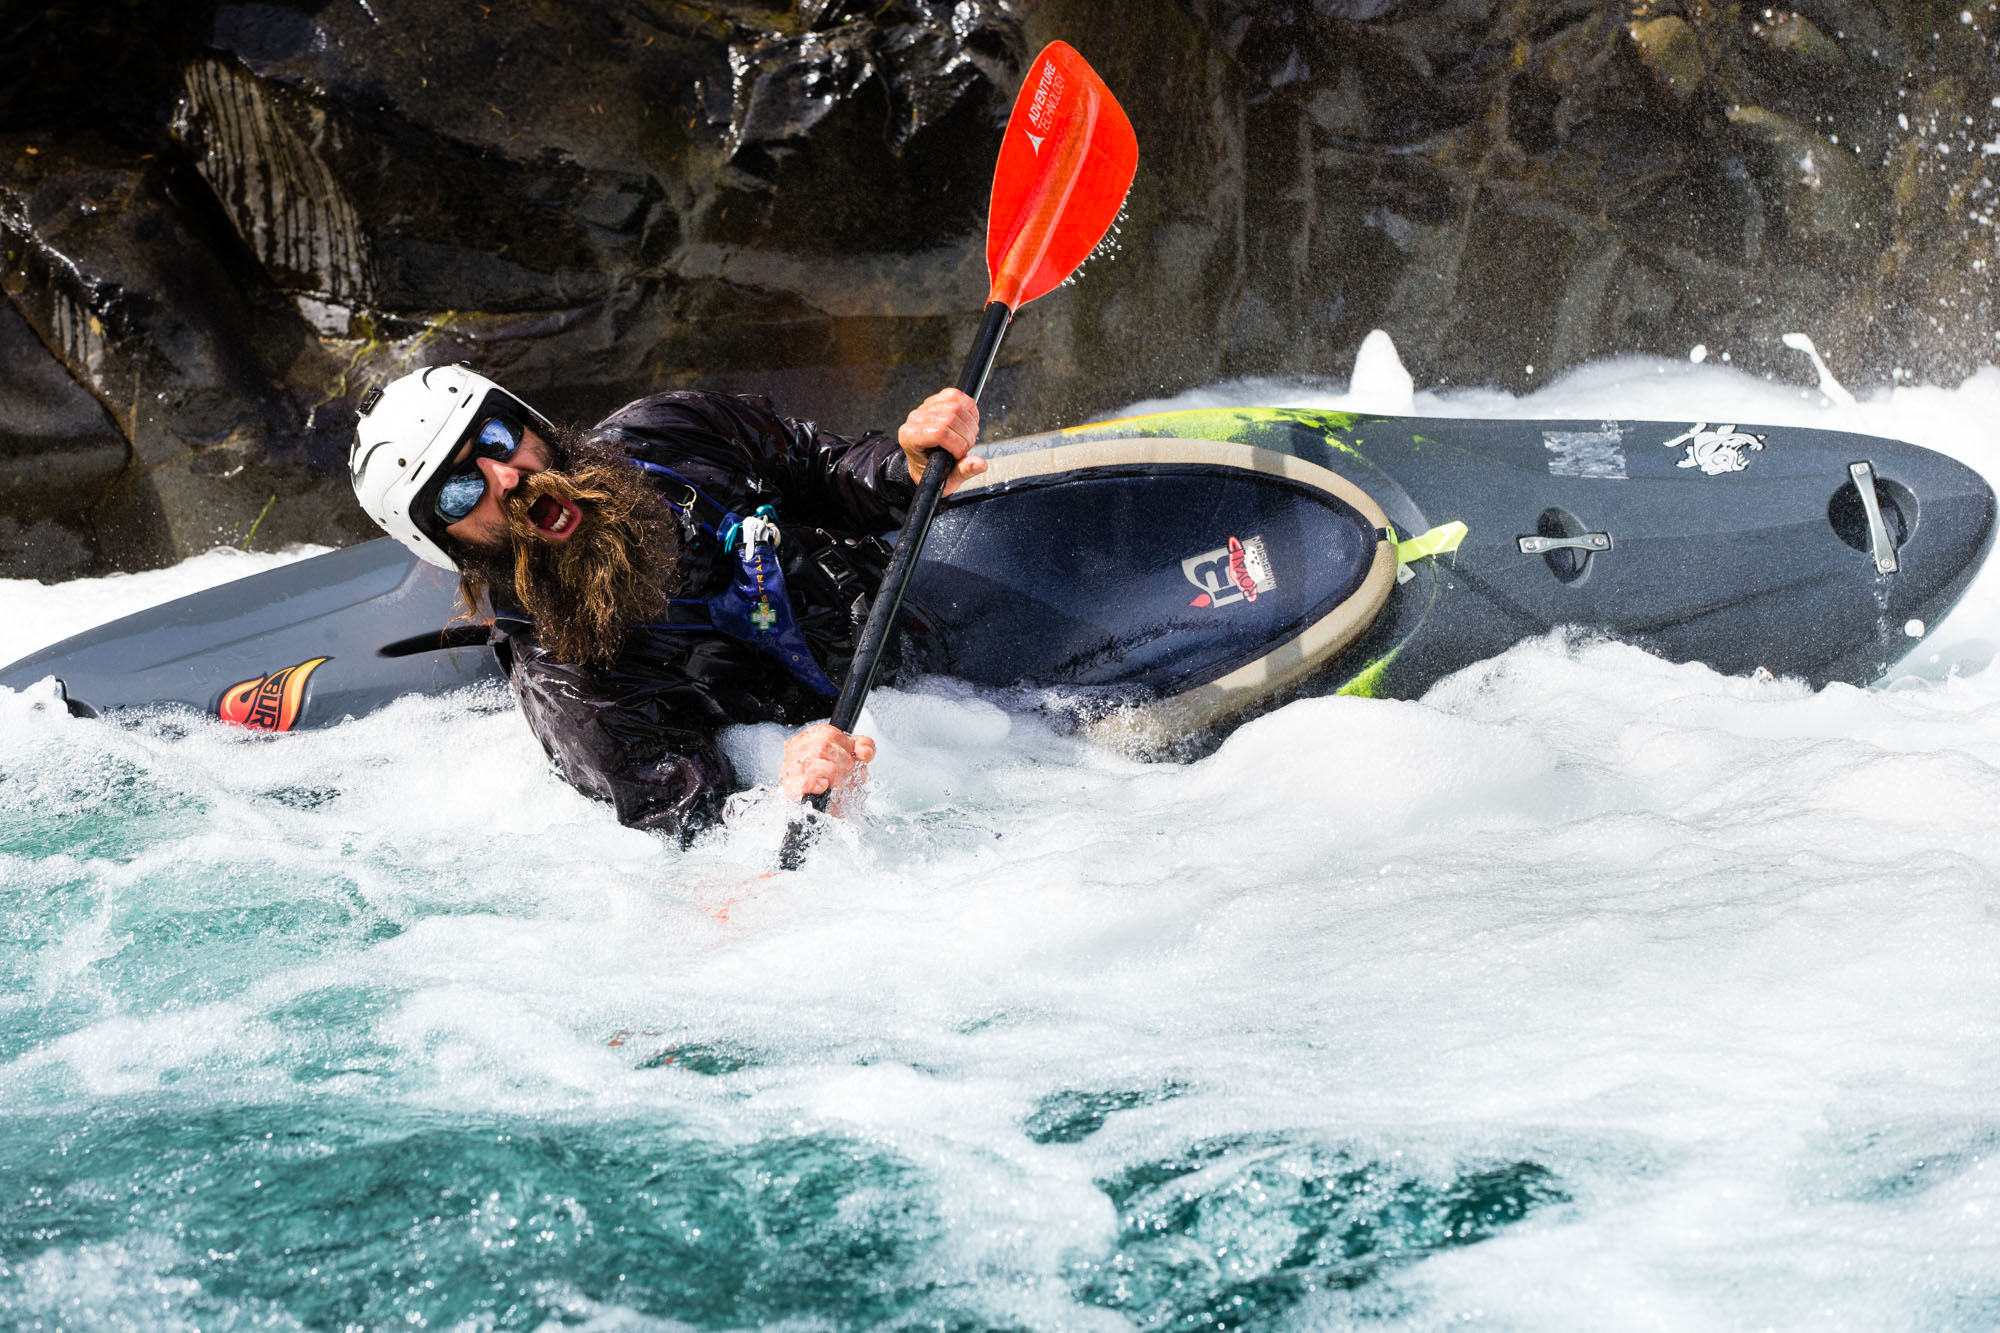 Whitewater Kayak in Pacific Northwest | Water Sports Photography